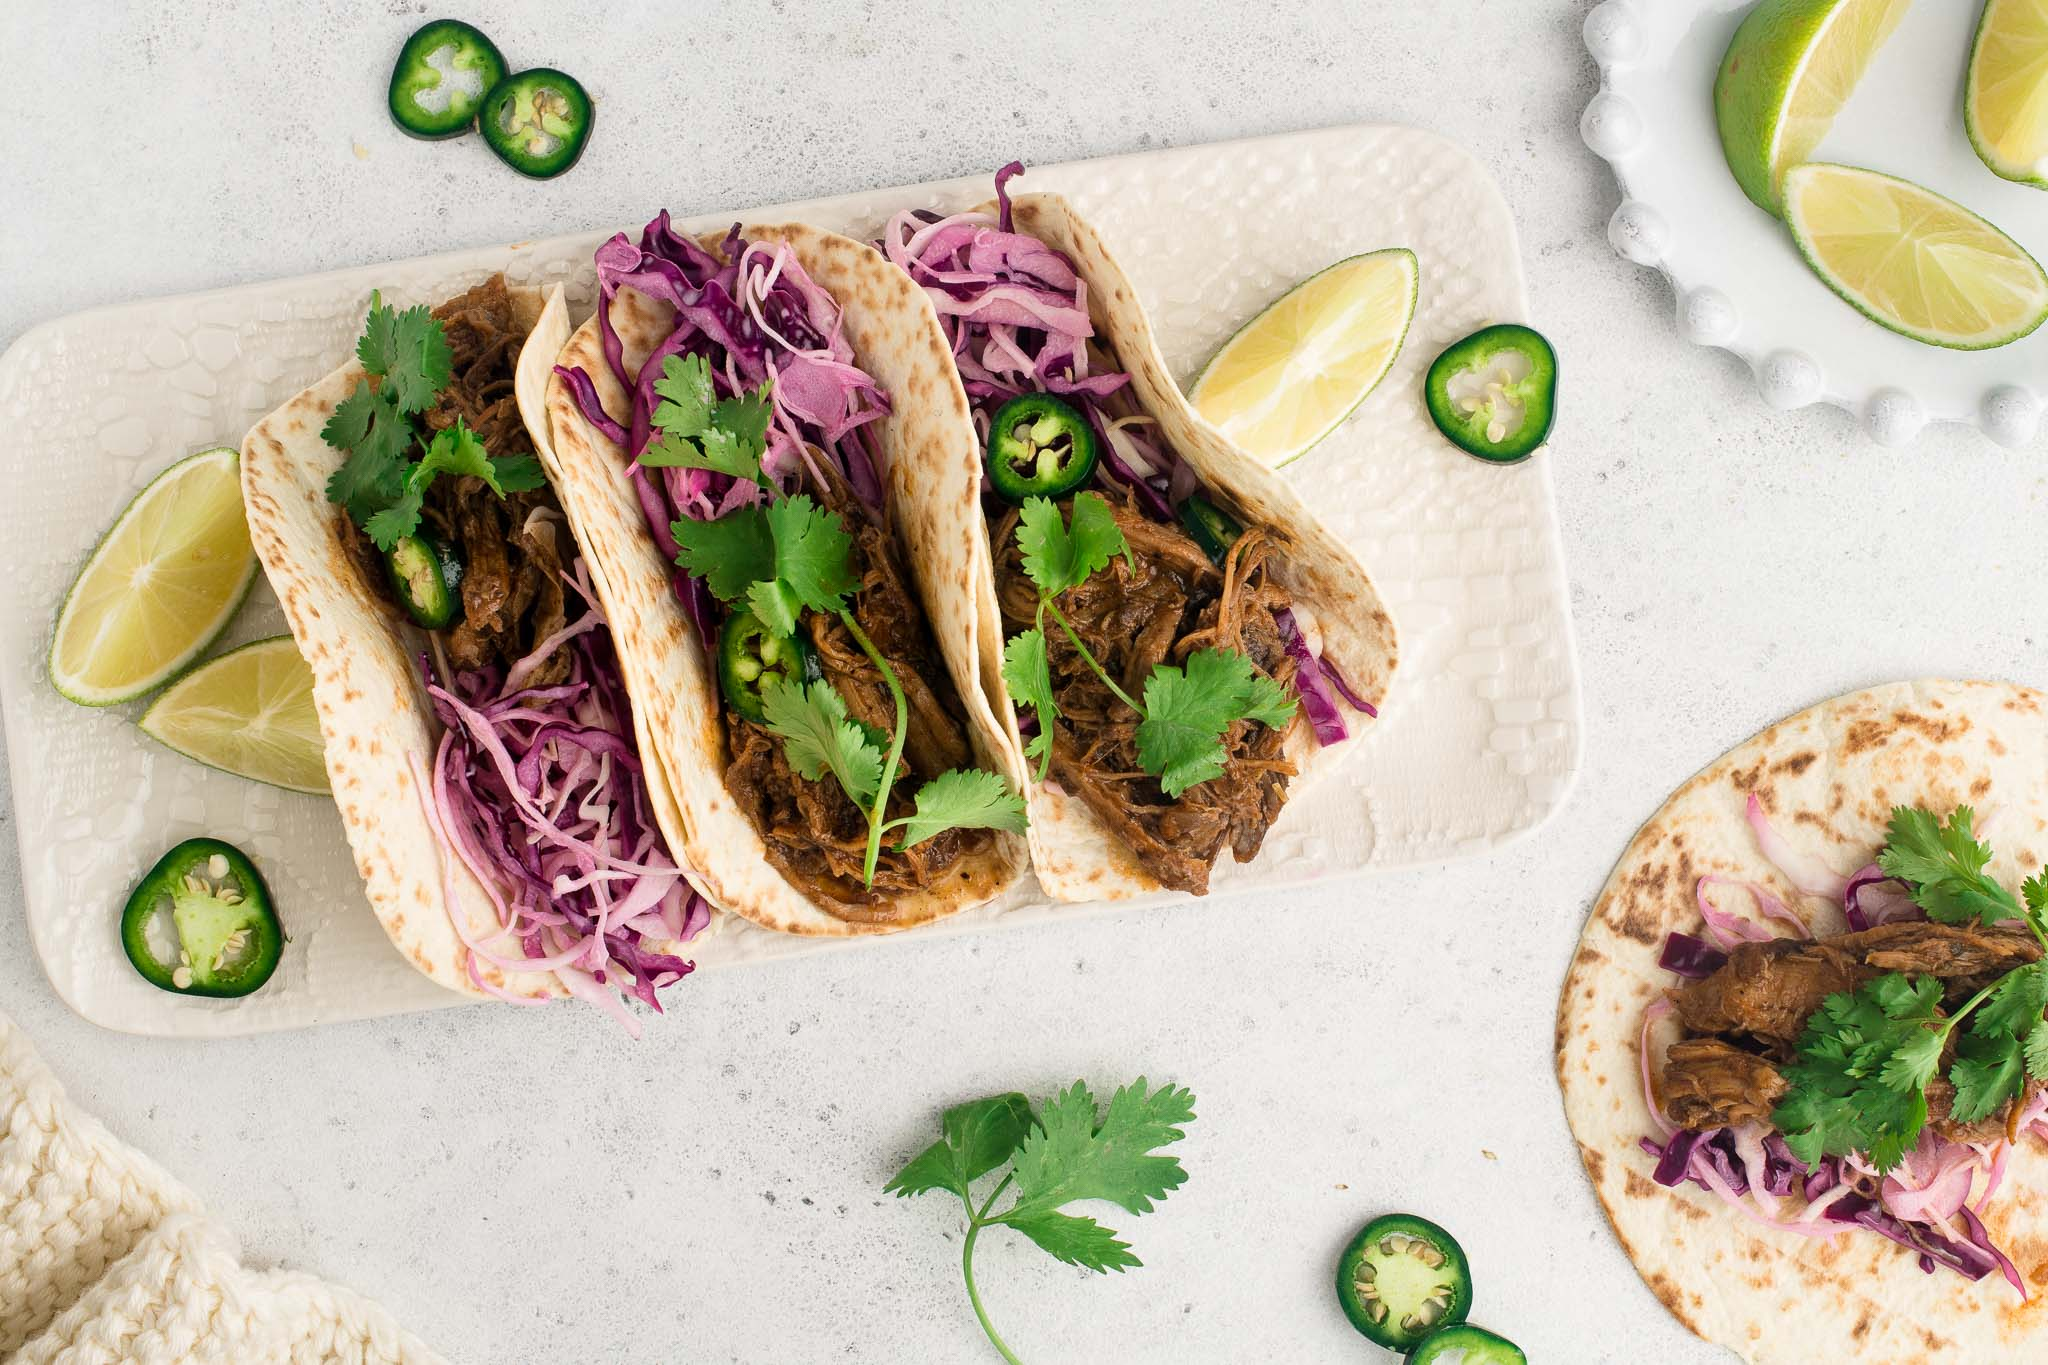 pulled pork tacos on white plate